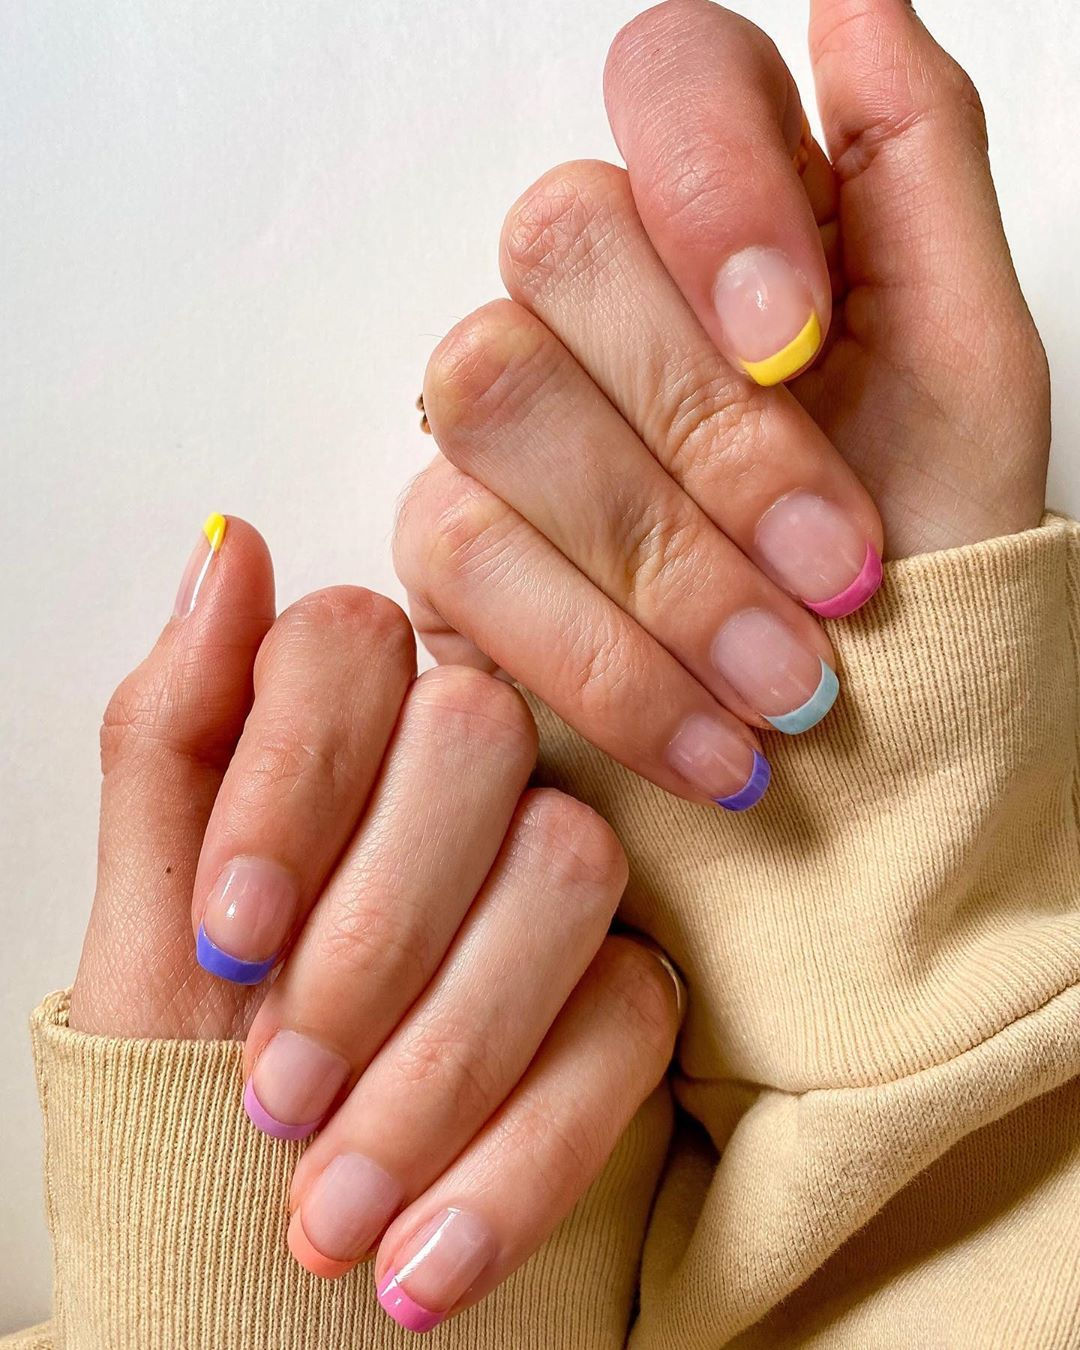 50 Hottest Natural And Lovely Short Square Nails For Spring Nails 2020 Fashion Girl S Blog In 2020 Manicure Nail Designs French Manicure Nails French Manicure Nail Designs